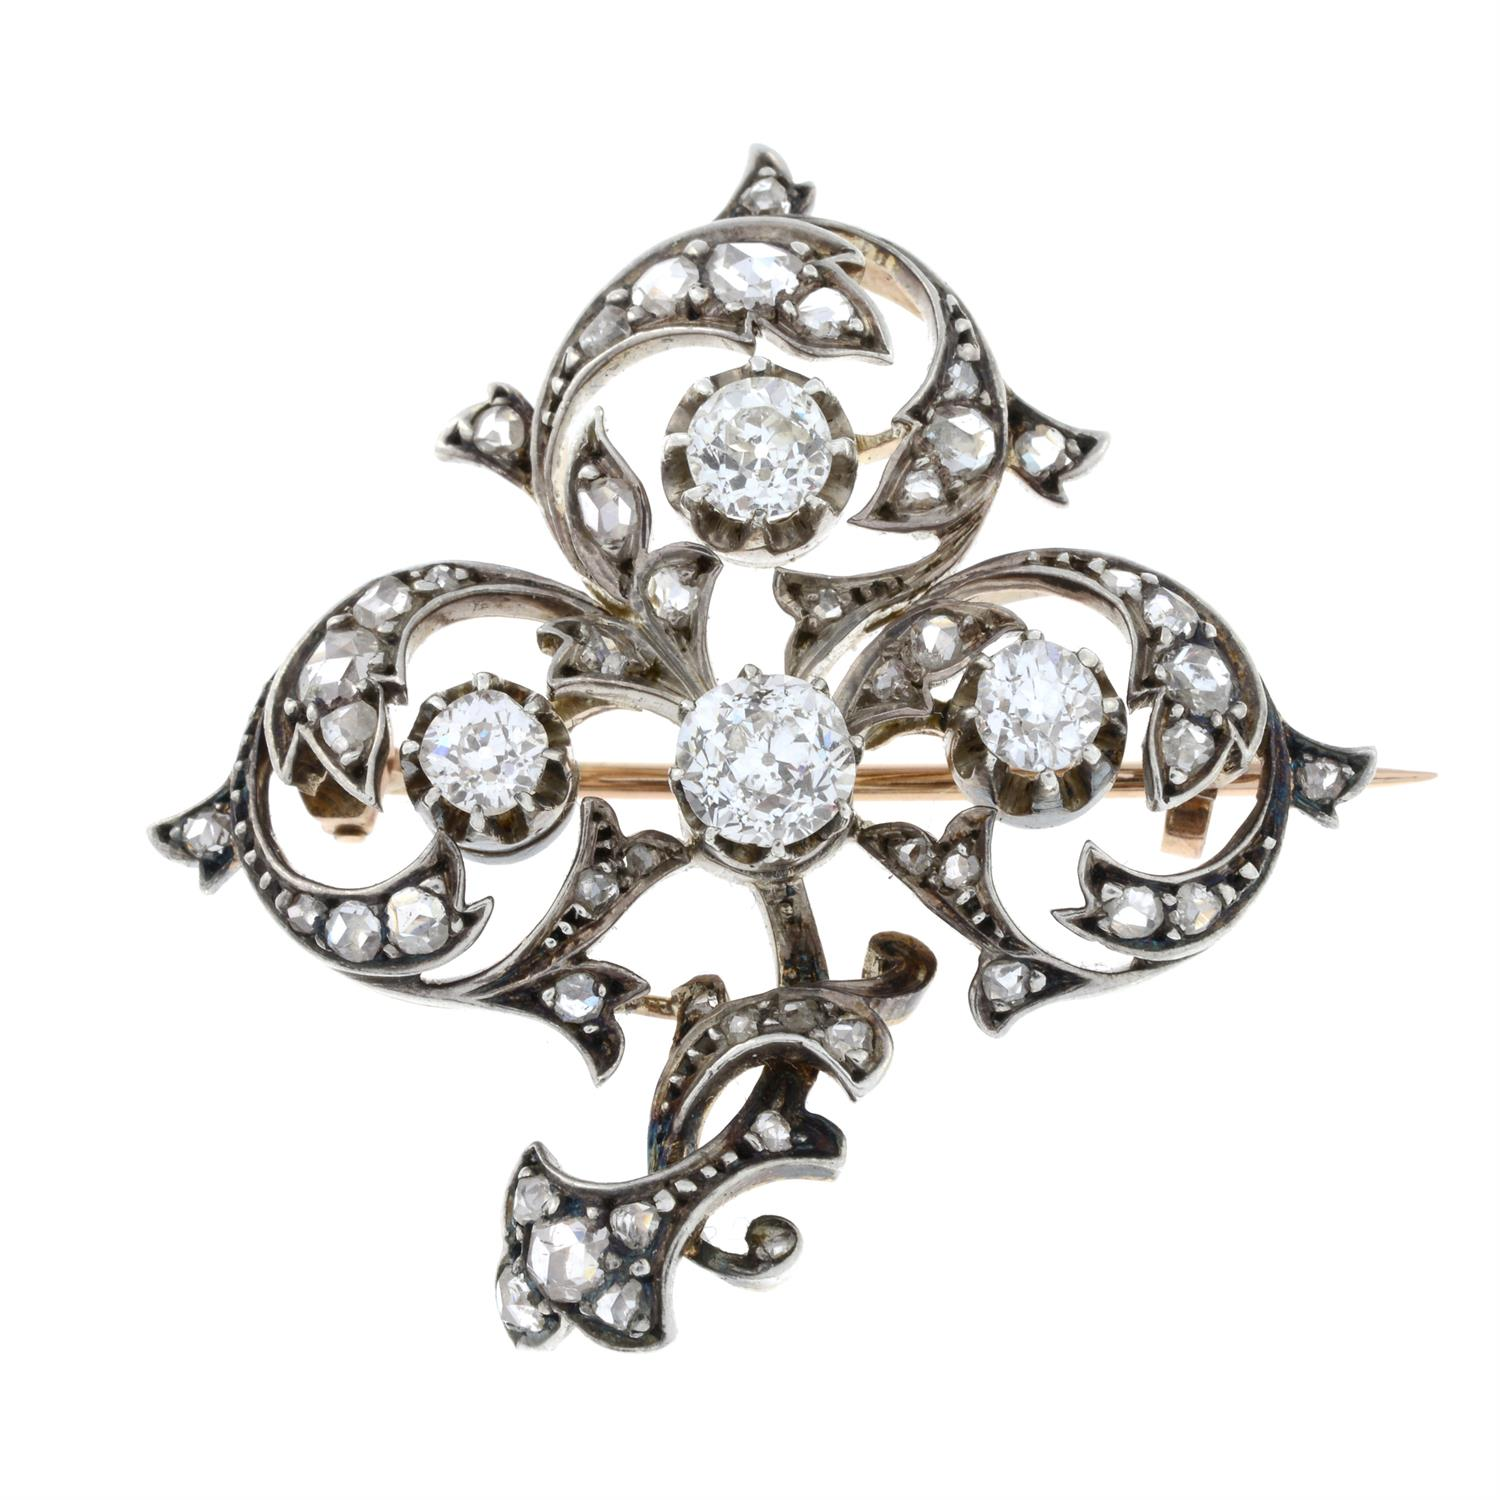 A late 19th century silver and gold, old and rose-cut diamond brooch. - Image 2 of 5